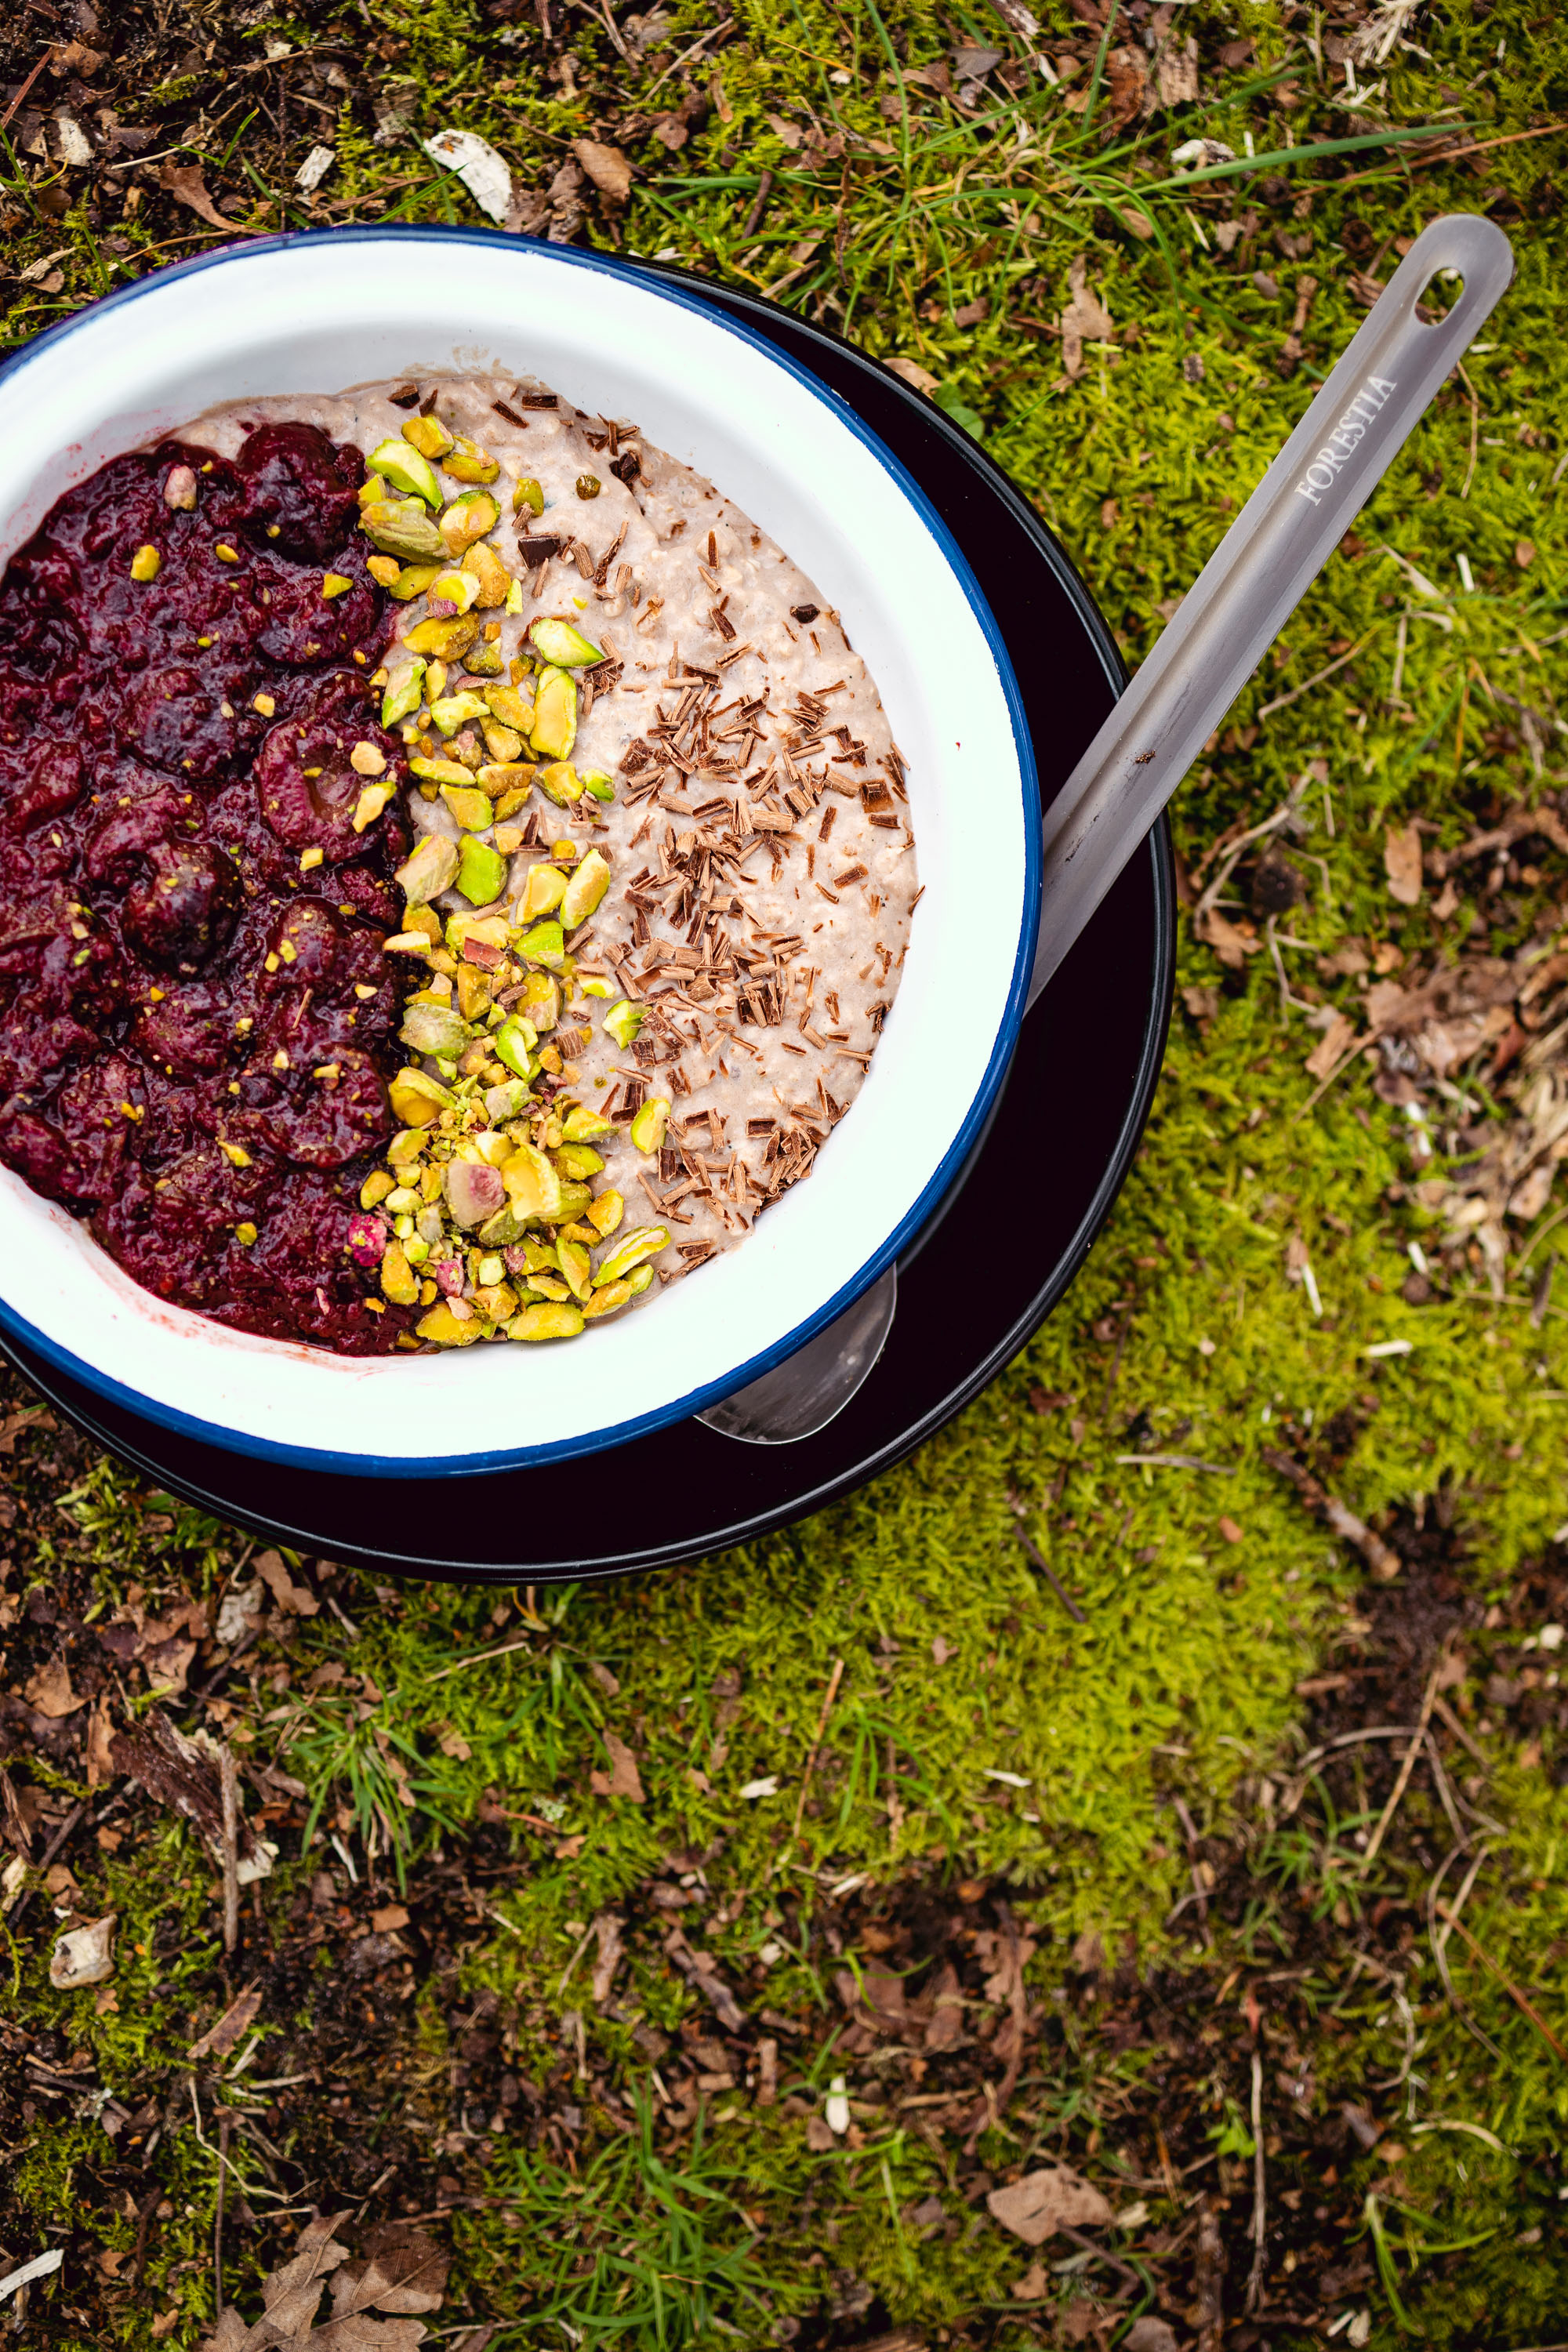 Ingredients - Overnight Oats1 cup Rolled Oats1 cup Coconut Yoghurt1 cup Almond milk4x scoops Form Peanut & Chocolate Protein Powder1 Tbsp Chia SeedsSea SaltCherry Compote250g Fresh CherriesMuscovado or Coconut Sugar to tasteTopping50g Roasted Pistachios20g Dark Chocolate